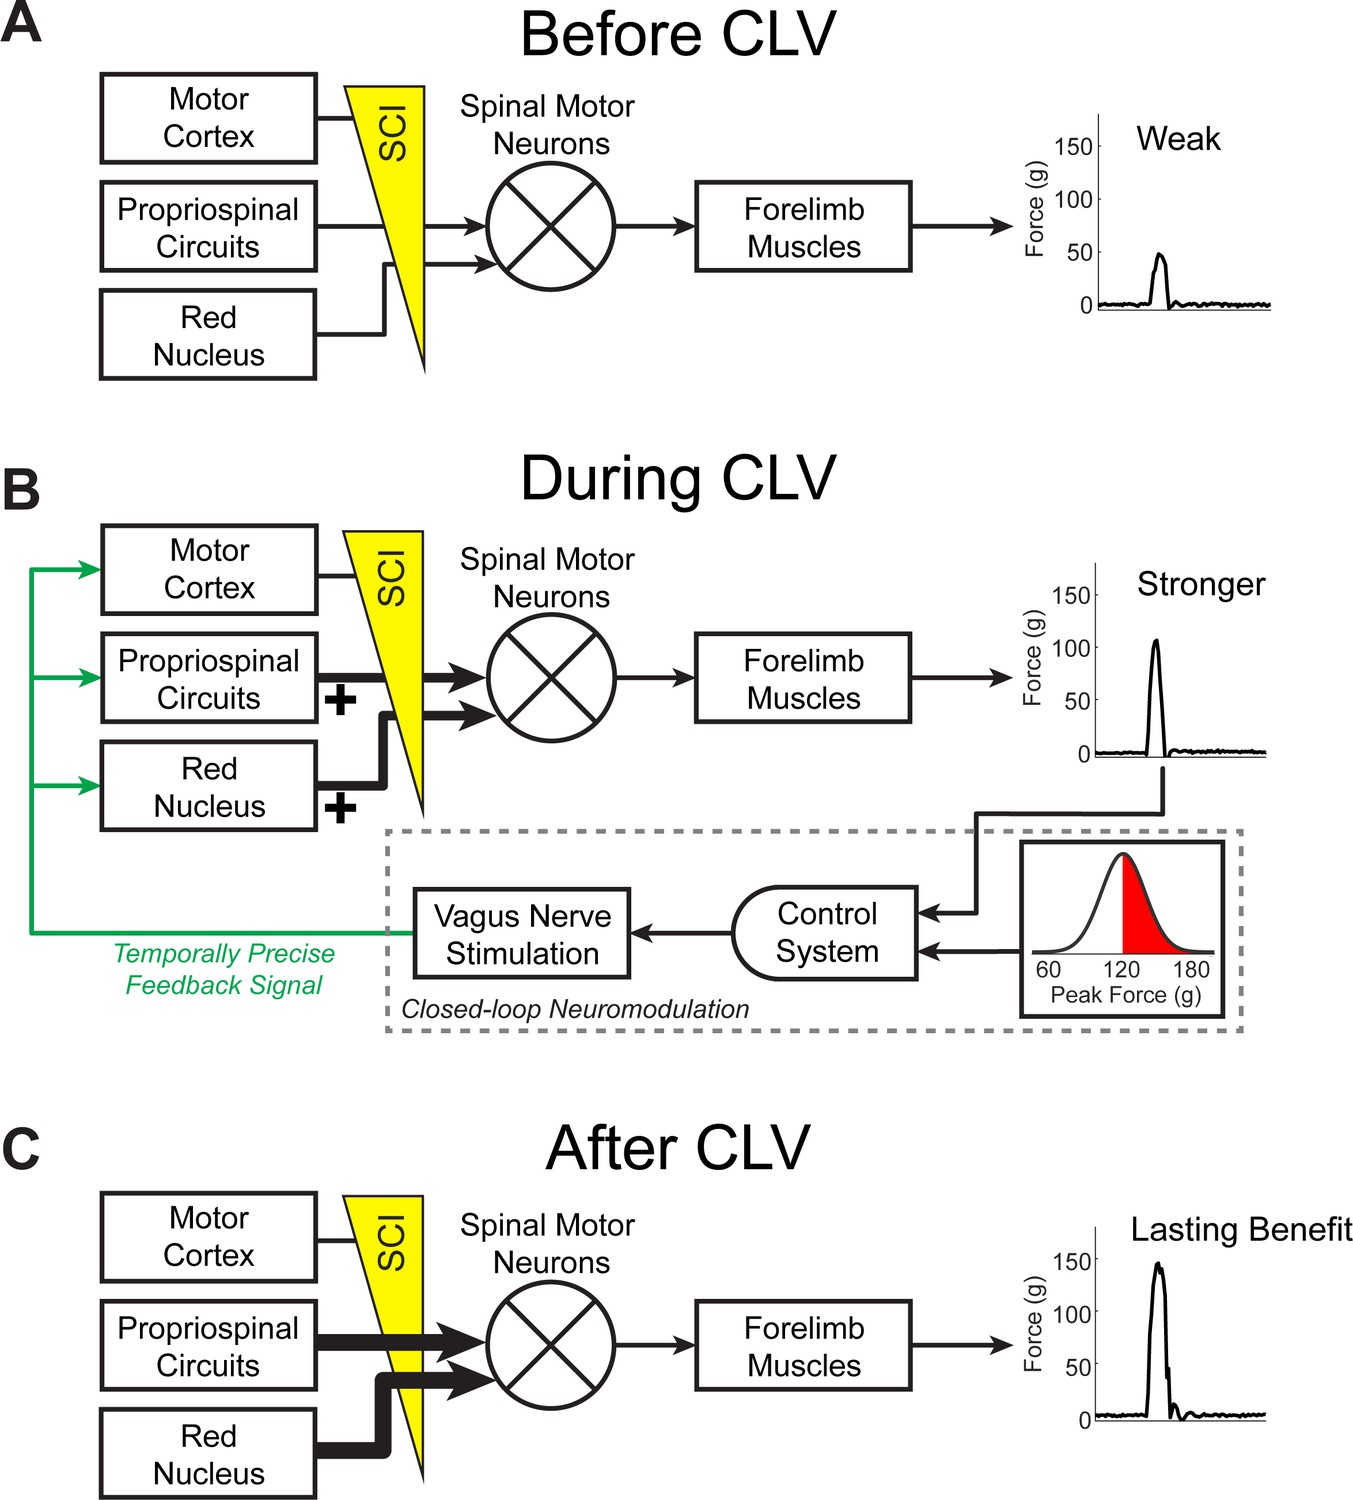 Closed Loop Neuromodulation Restores Network Connectivity And Motor Block Diagram For Control System Clv Drives Plasticity In Remaining Networks To Support Recovery After Bilateral Sci